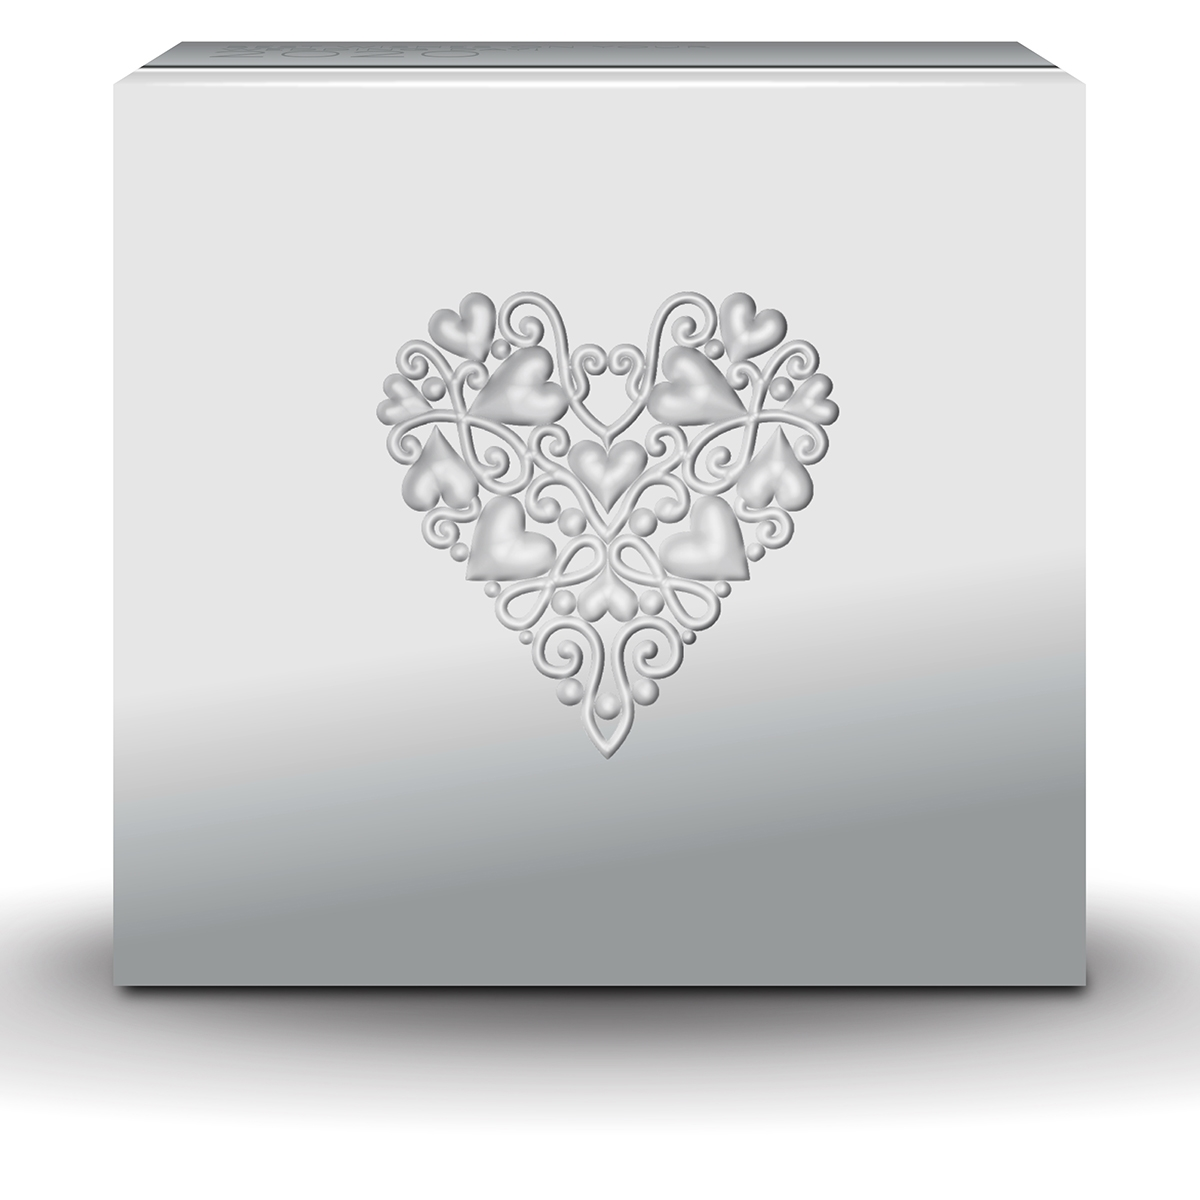 Wedding 2020 1oz Silver Proof Coin: BEST WISHES ON YOUR WEDDING DAY!